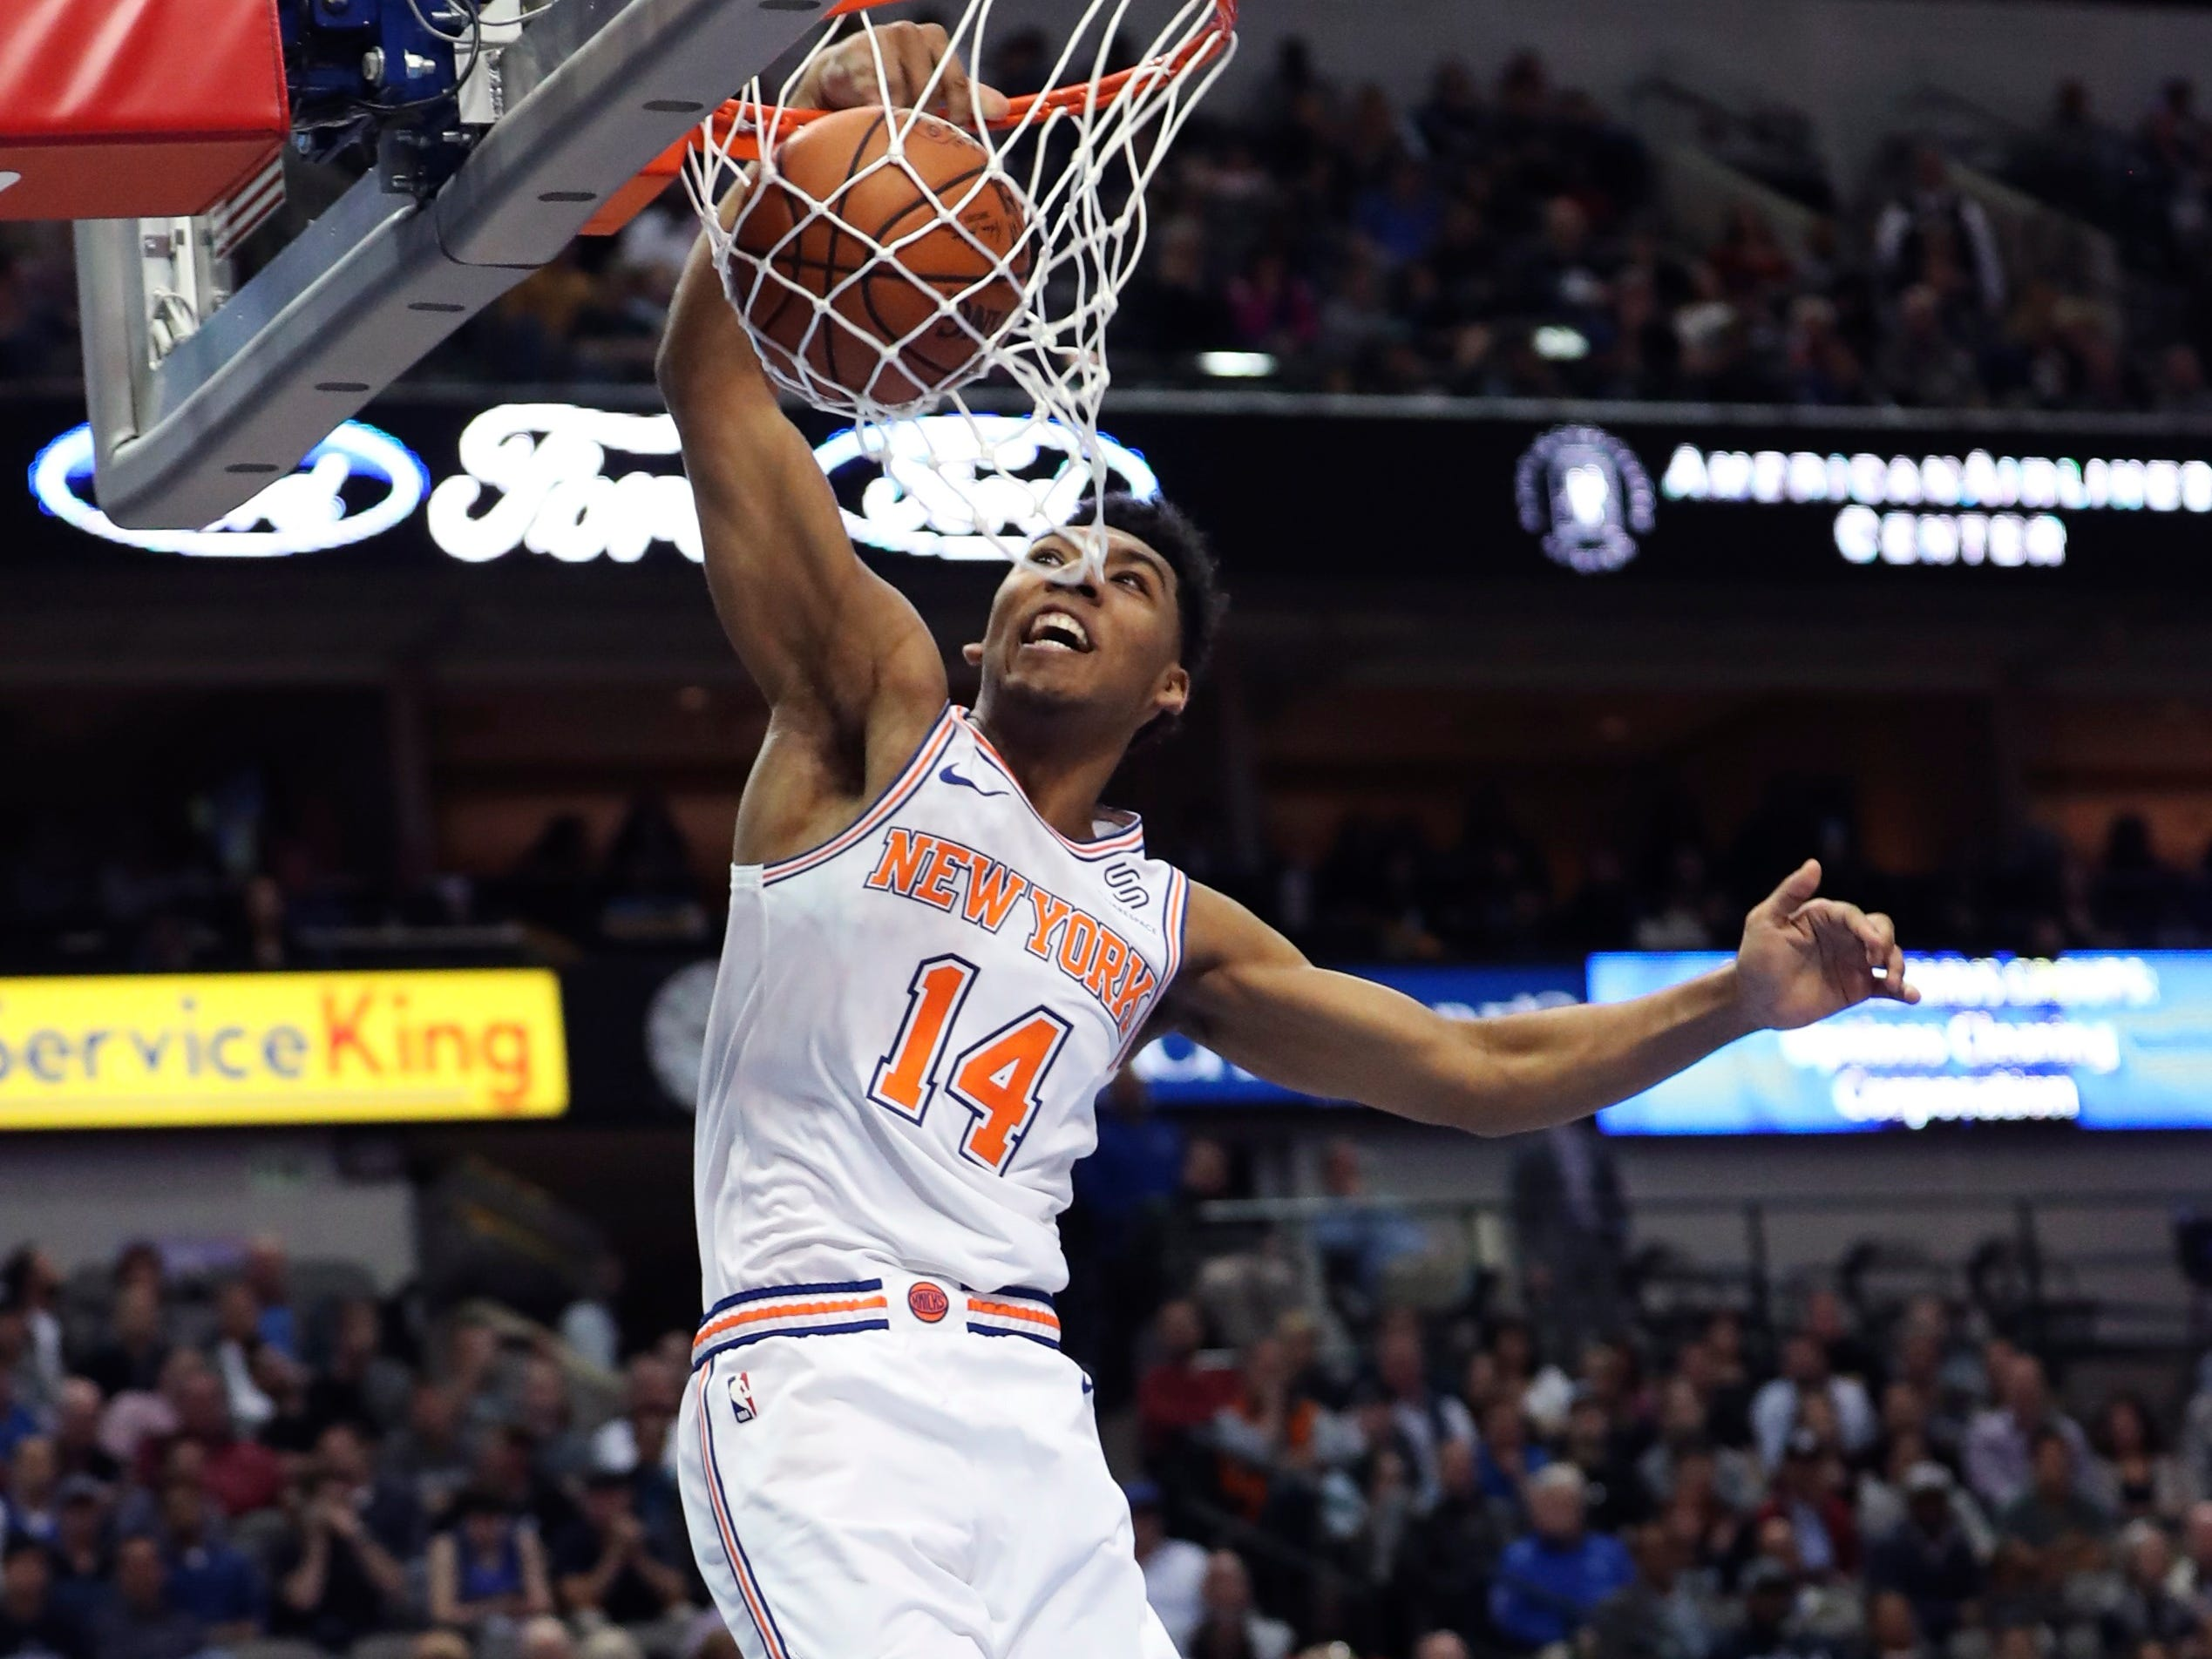 Nov. 2: Knicks rookie Allonzo Trier throws down a thunderous one-handed slam during the second half against the Mavericks in Dallas.